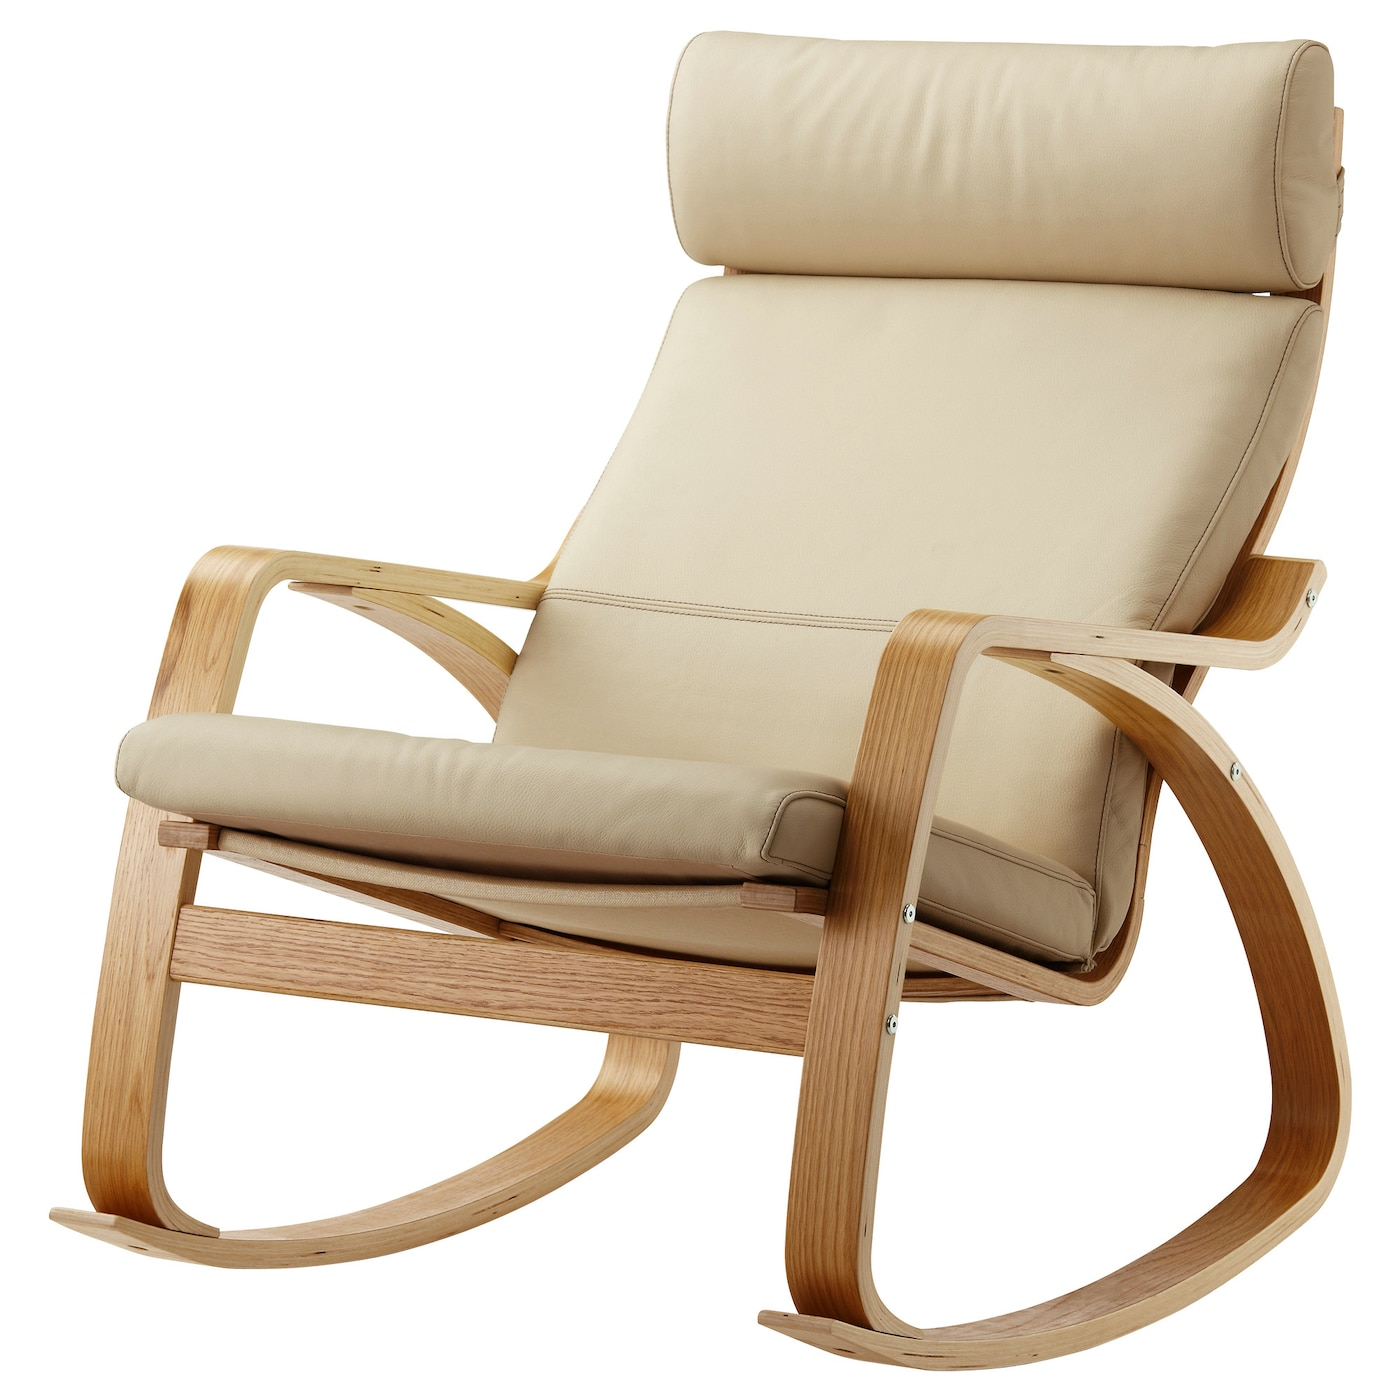 Nice IKEA POÄNG Rocking Chair The High Back Gives Good Support For Your Neck.